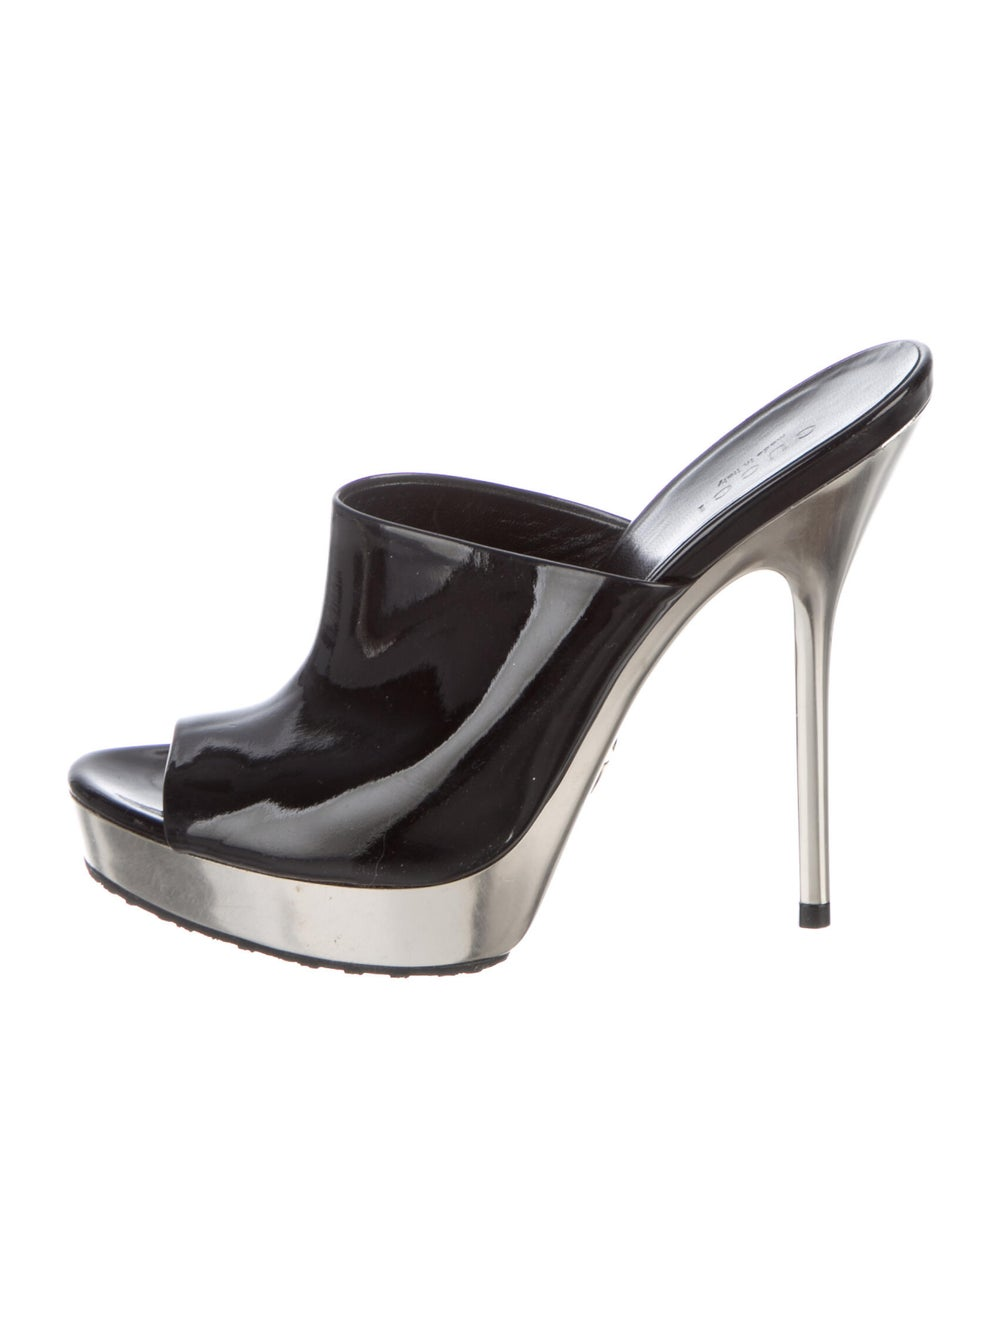 Gucci Patent Leather Mules Black - image 1